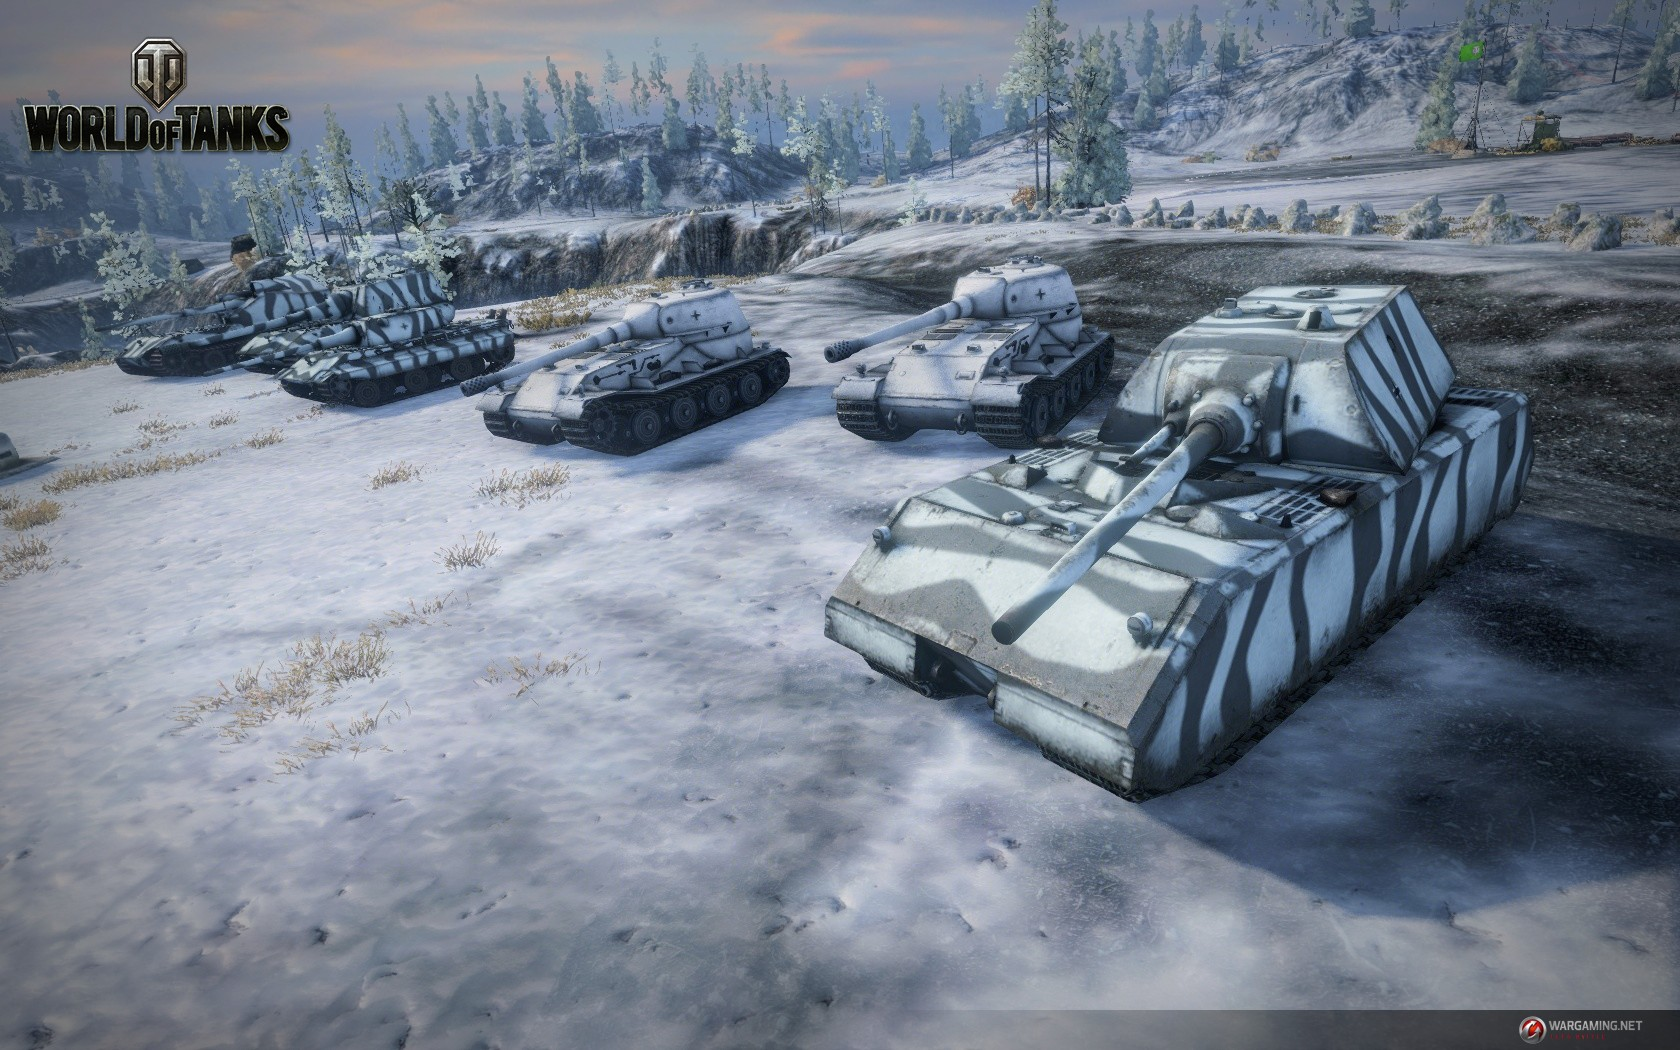 World of tanks 811 to bring new game mode and maps gamingshogun wotscreenscombatgermanyvsbritainupdate811image03 gumiabroncs Images